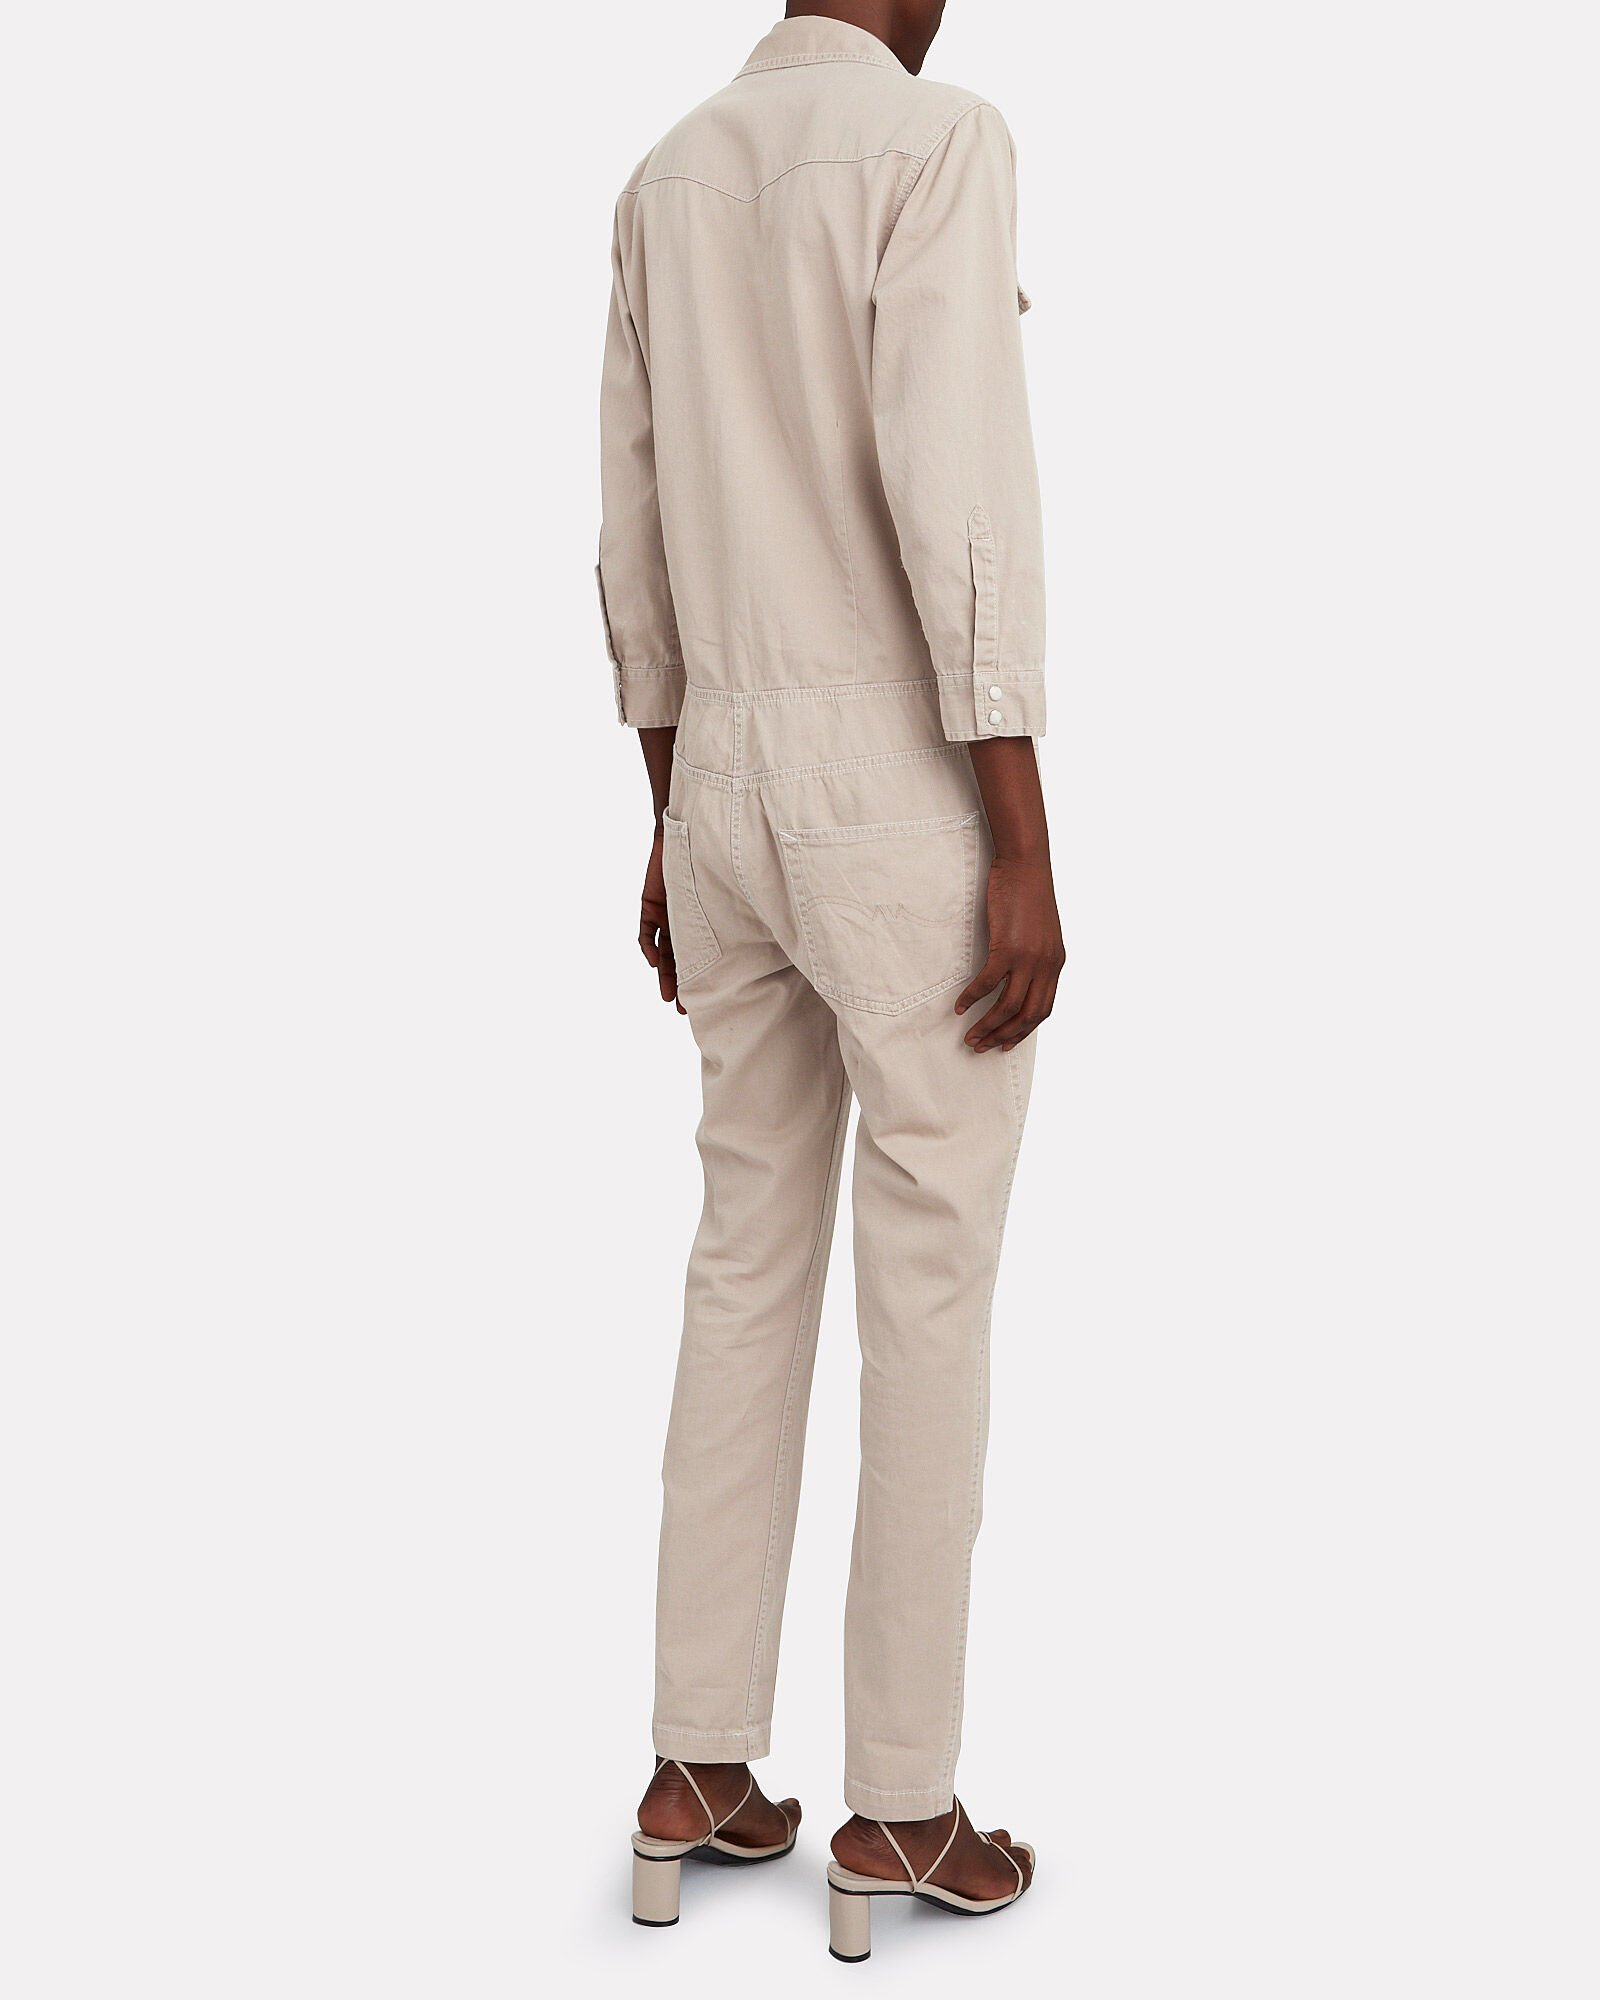 Cowboy Denim Jumpsuit, BEIGE, hi-res